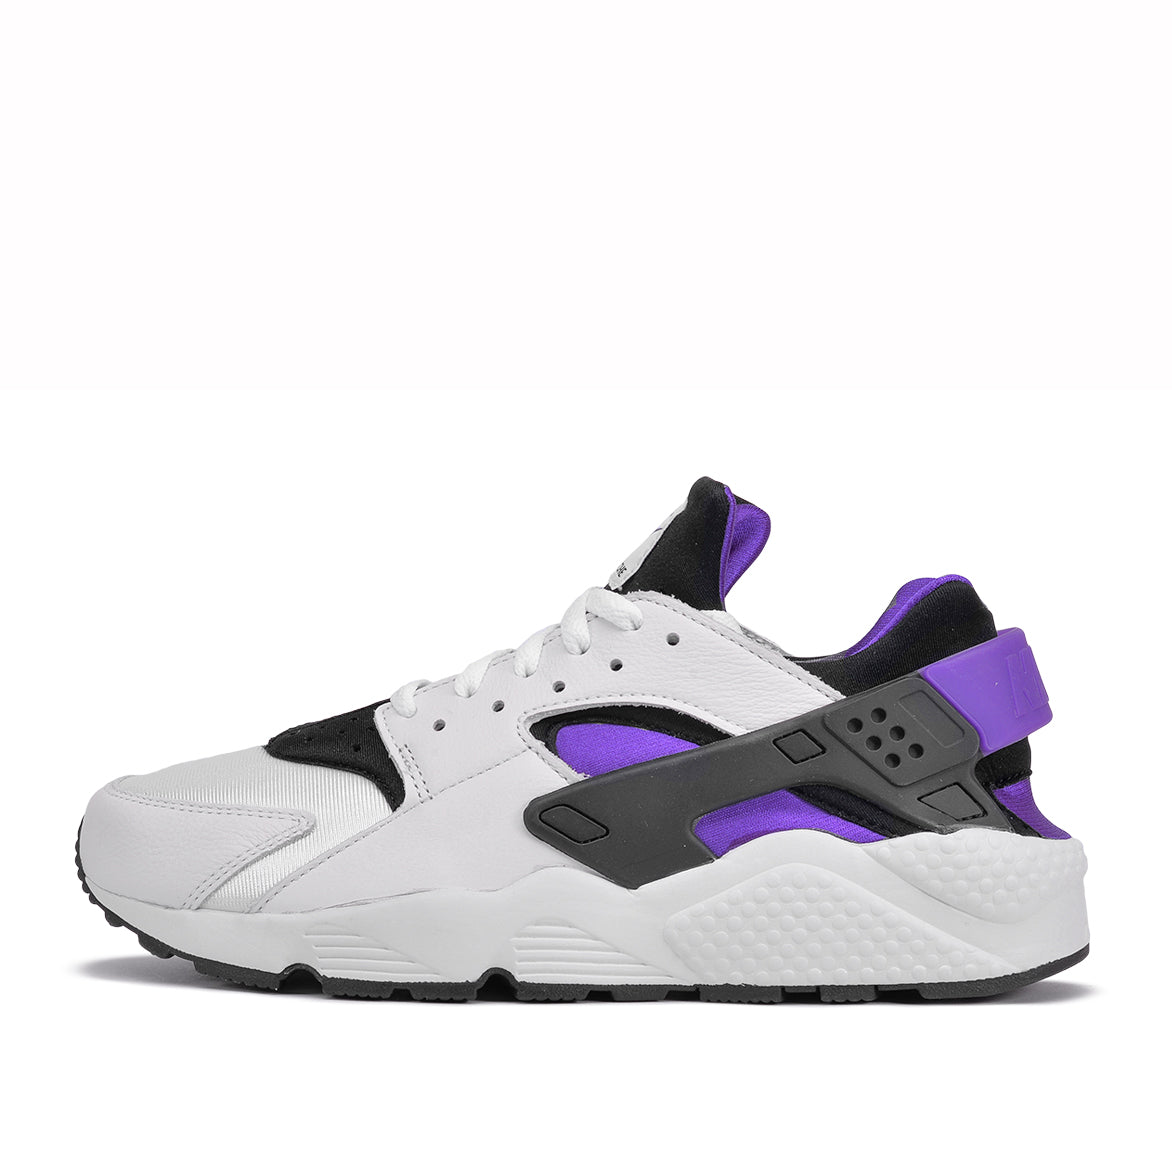 8d3d8df01ebc NIKE AIR HUARACHE RUN `91 QS